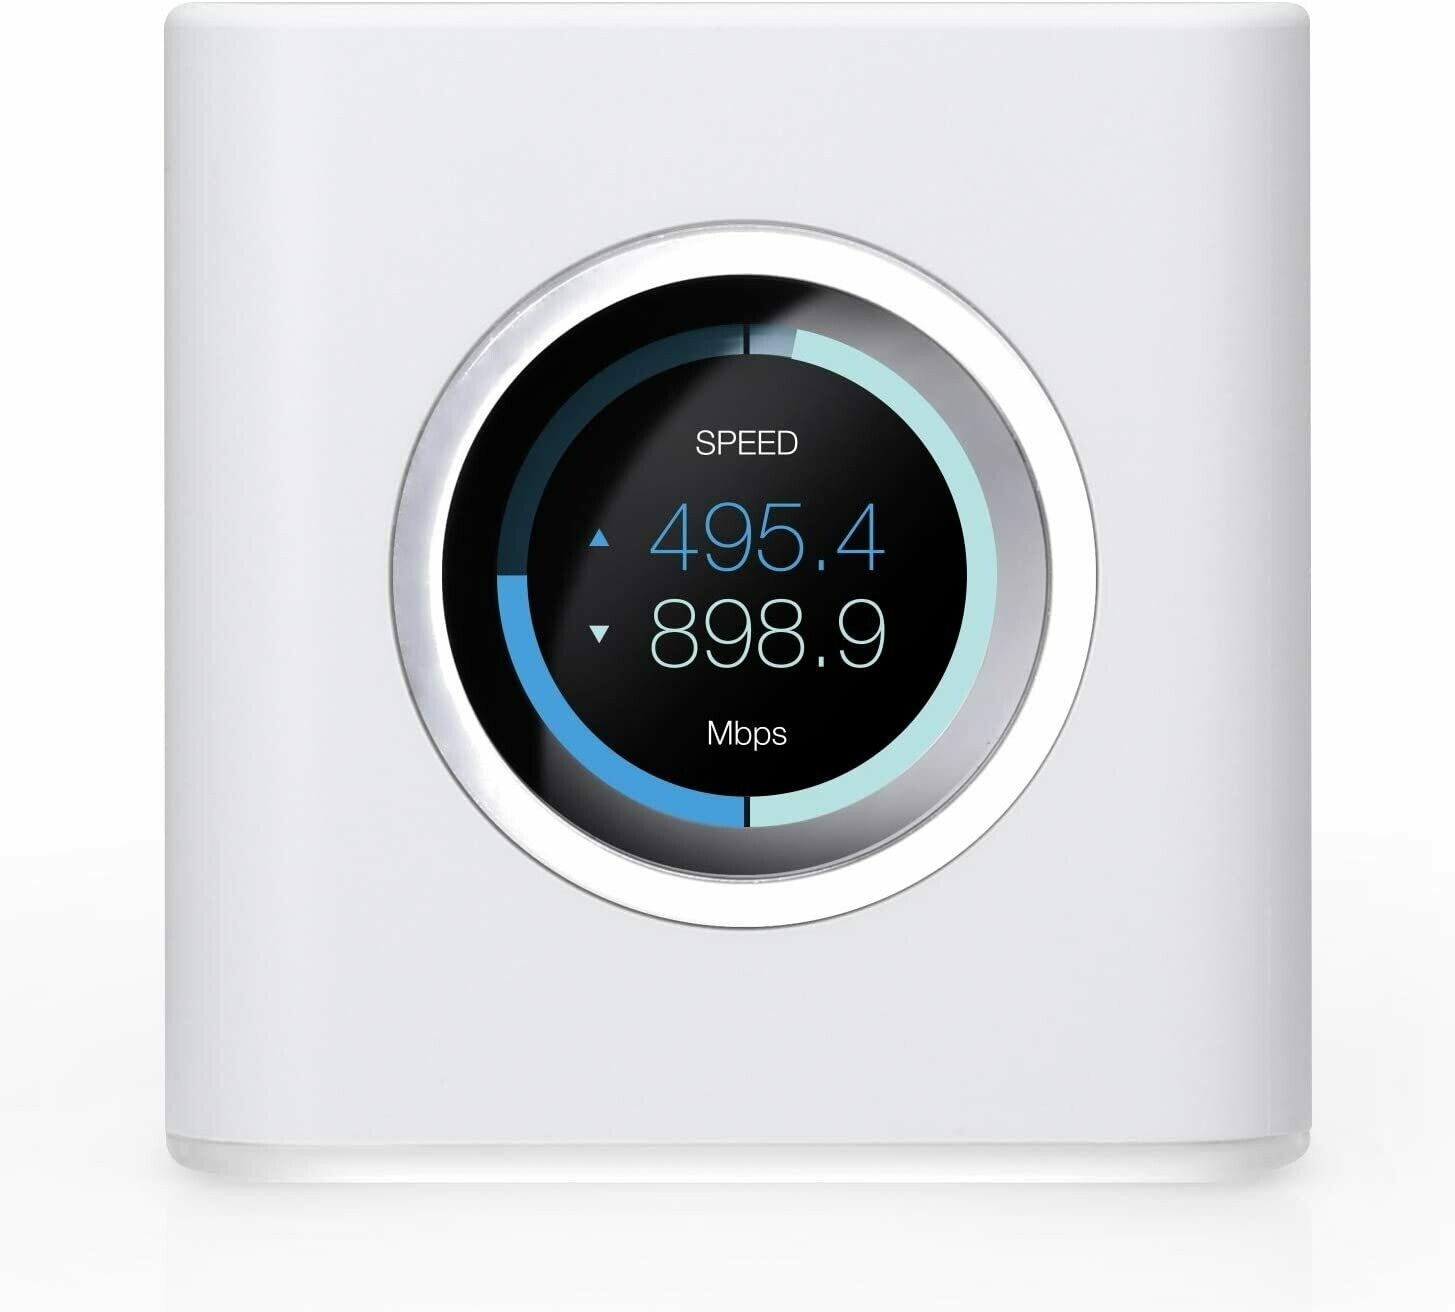 AmpliFi HD Wifi Router with Touchscreen Display